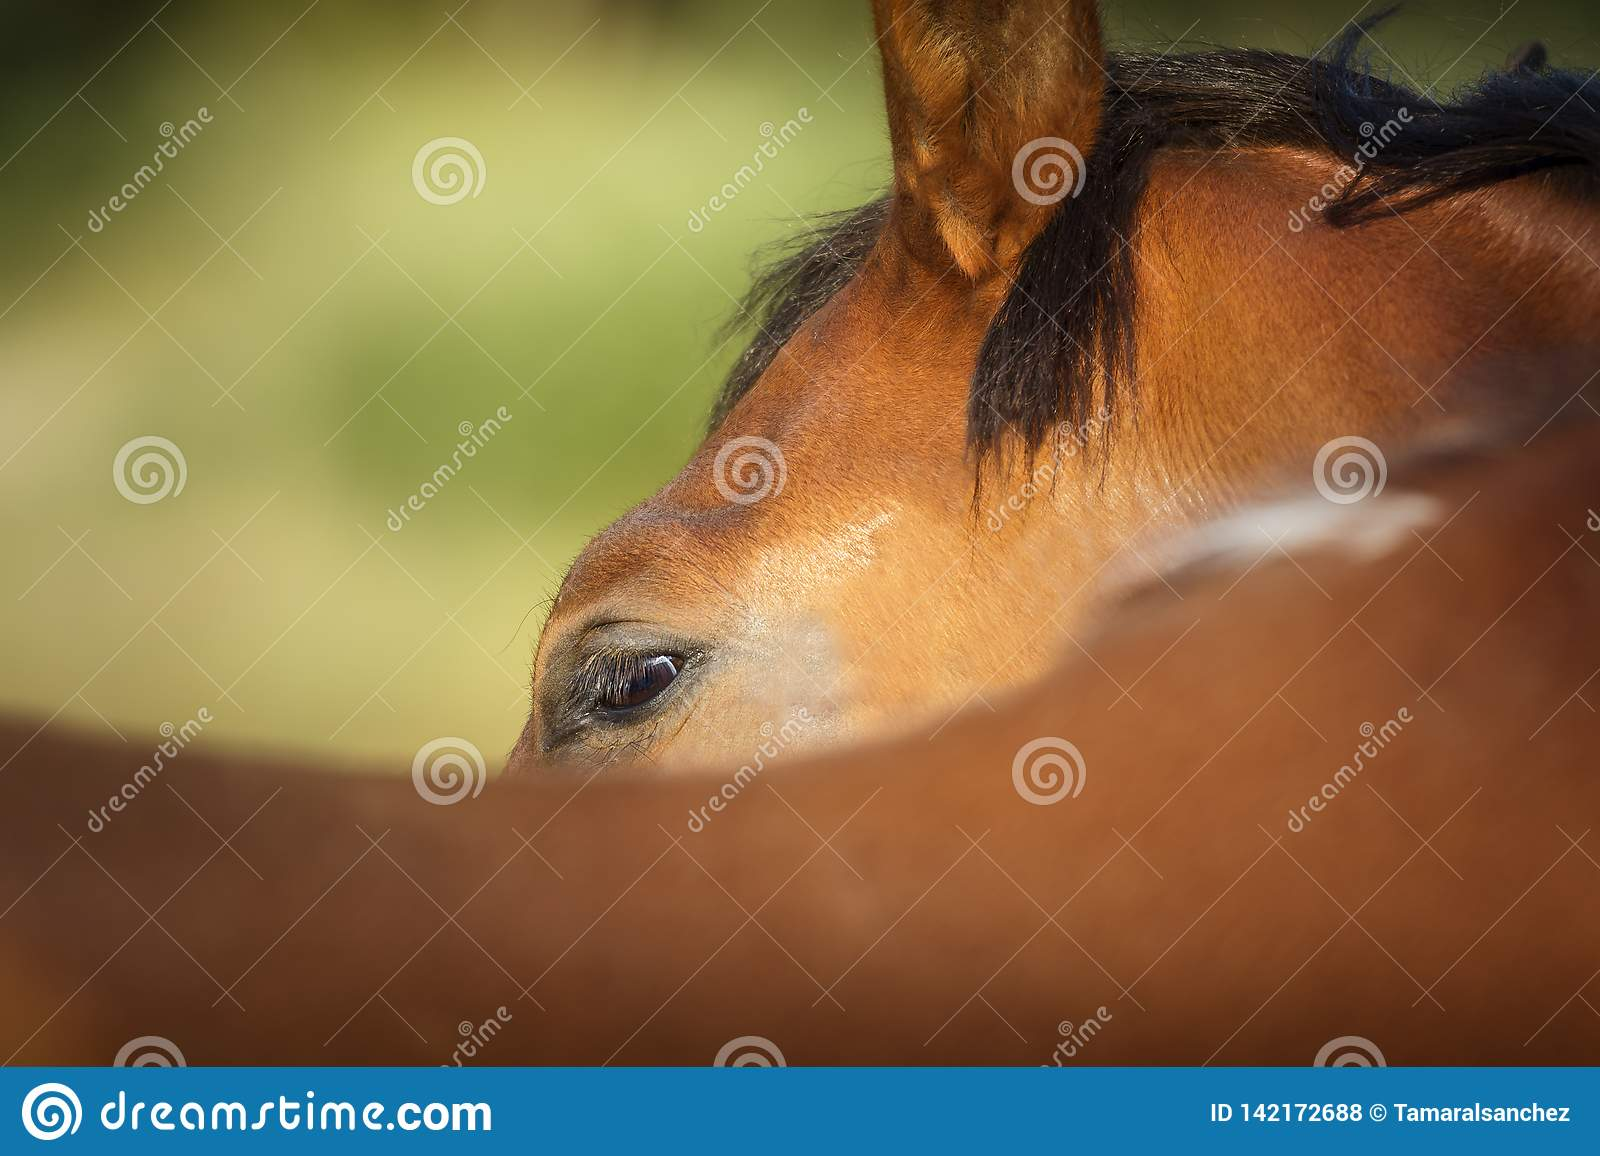 Look of a chestnut horse photographed from behind its rump with green background